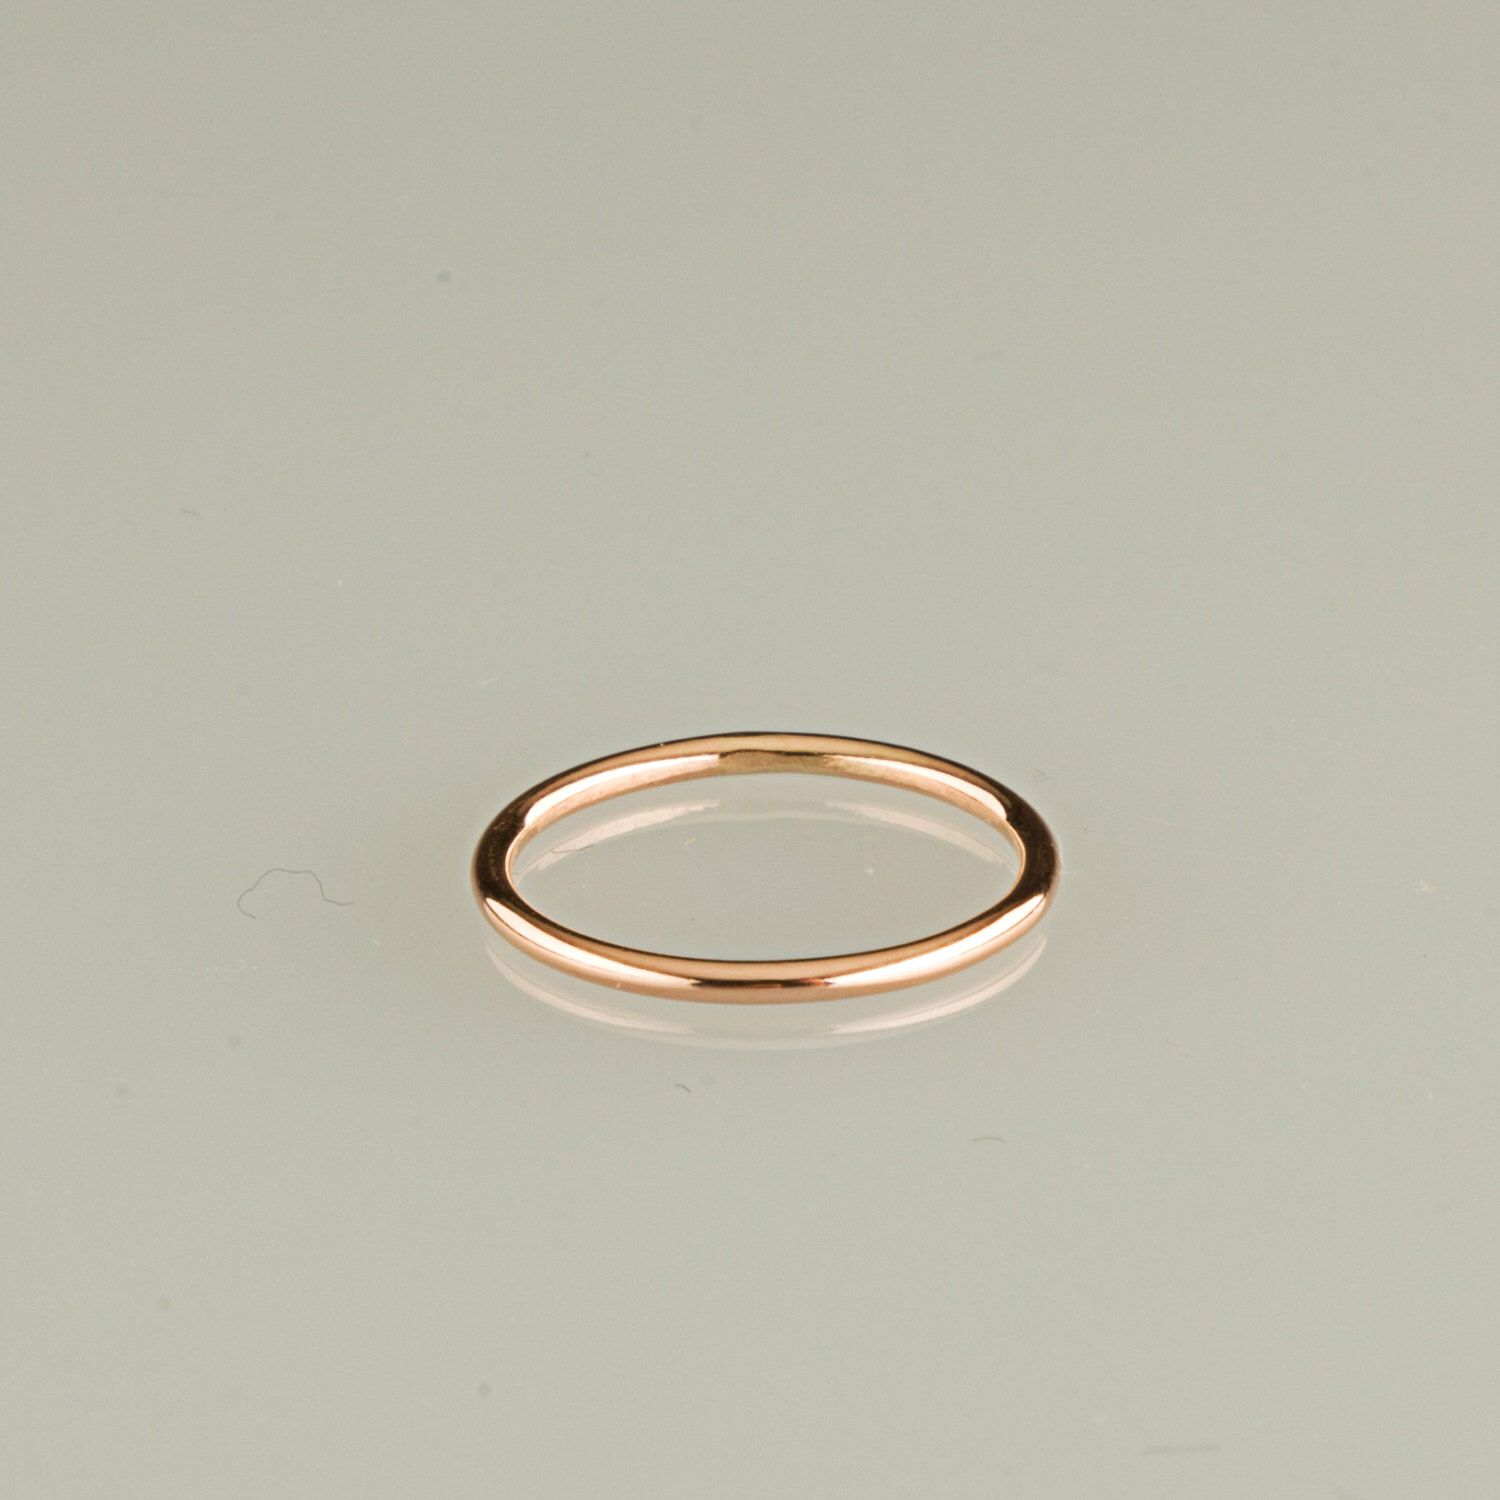 ring bands thin in available white wedding band yellow and pin rose gold